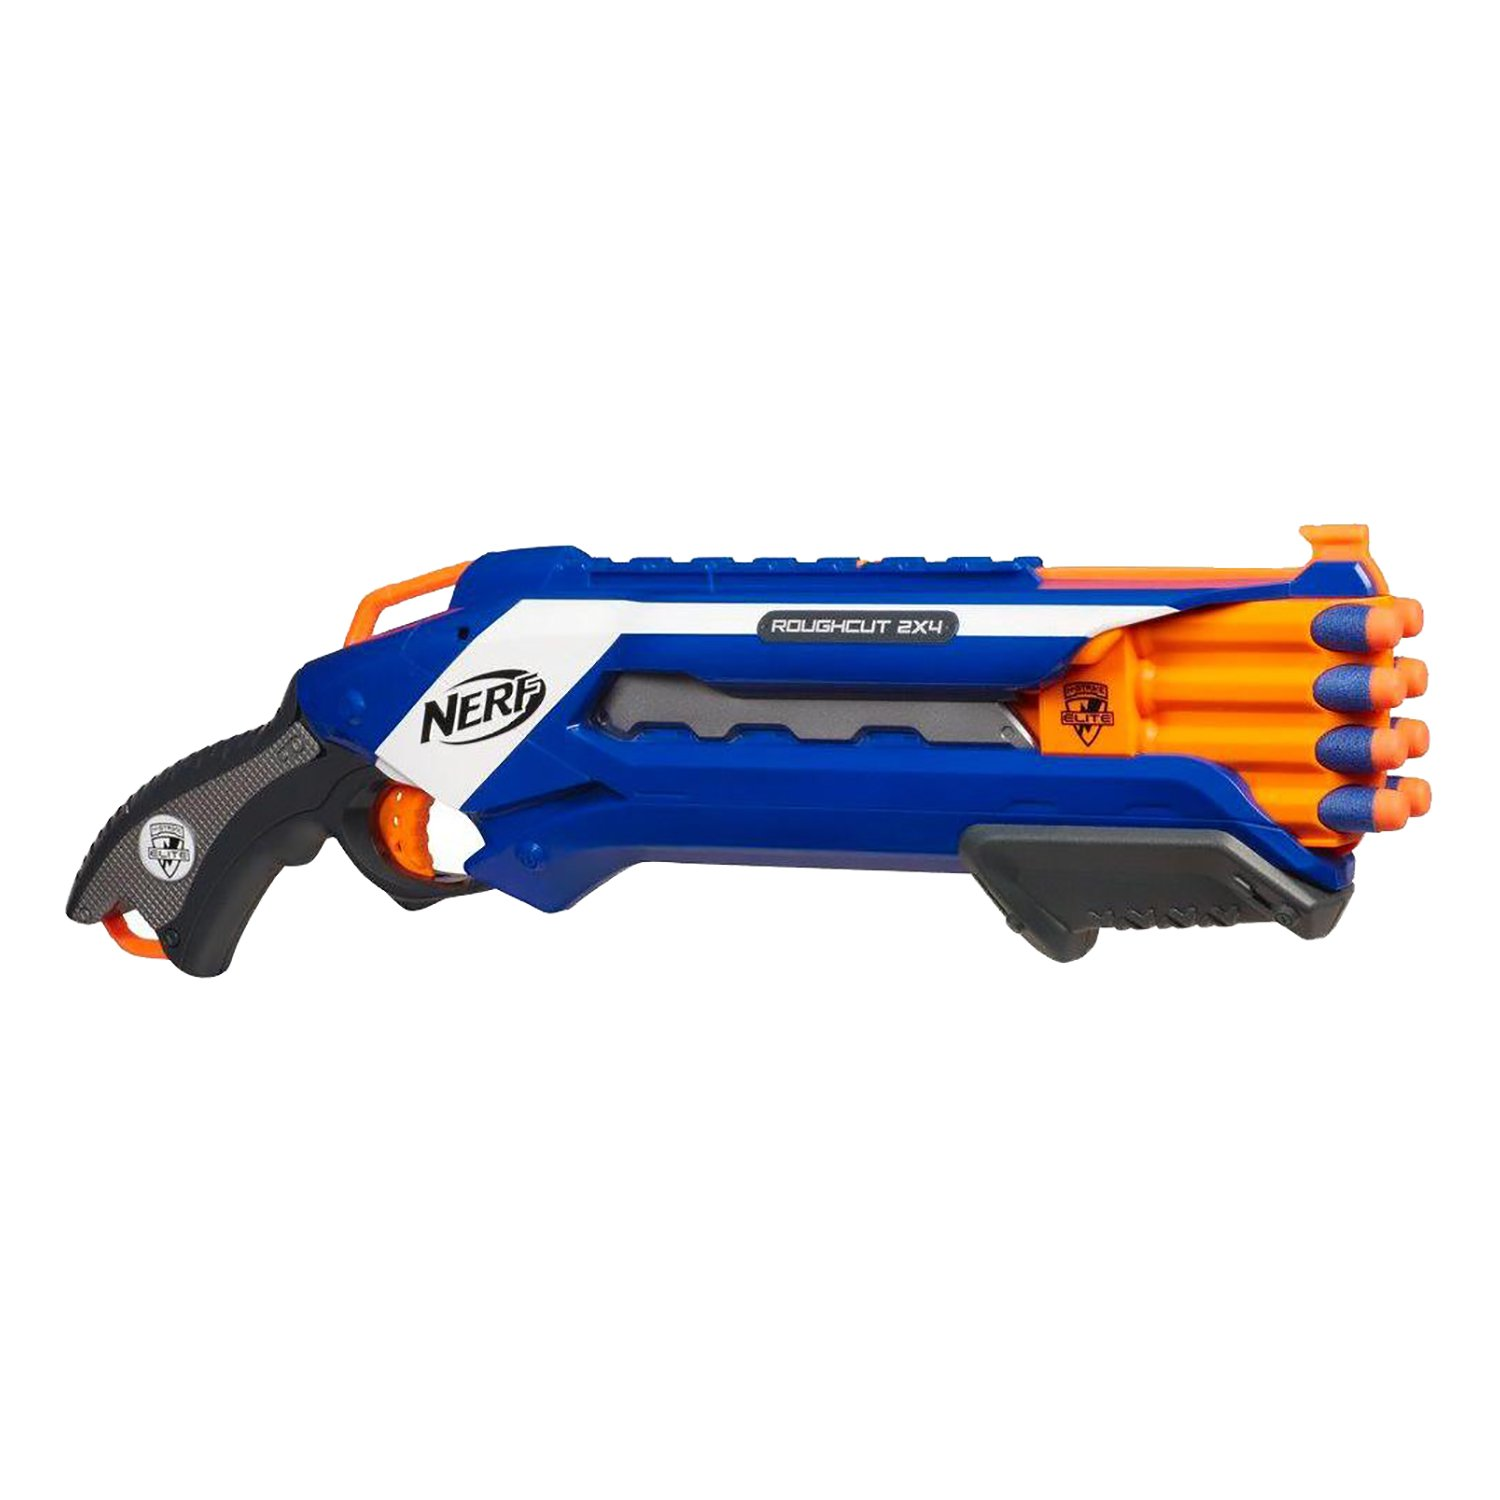 Blaster Nerf N-Strike Elite Rough Cut 2X4 imagine 2021